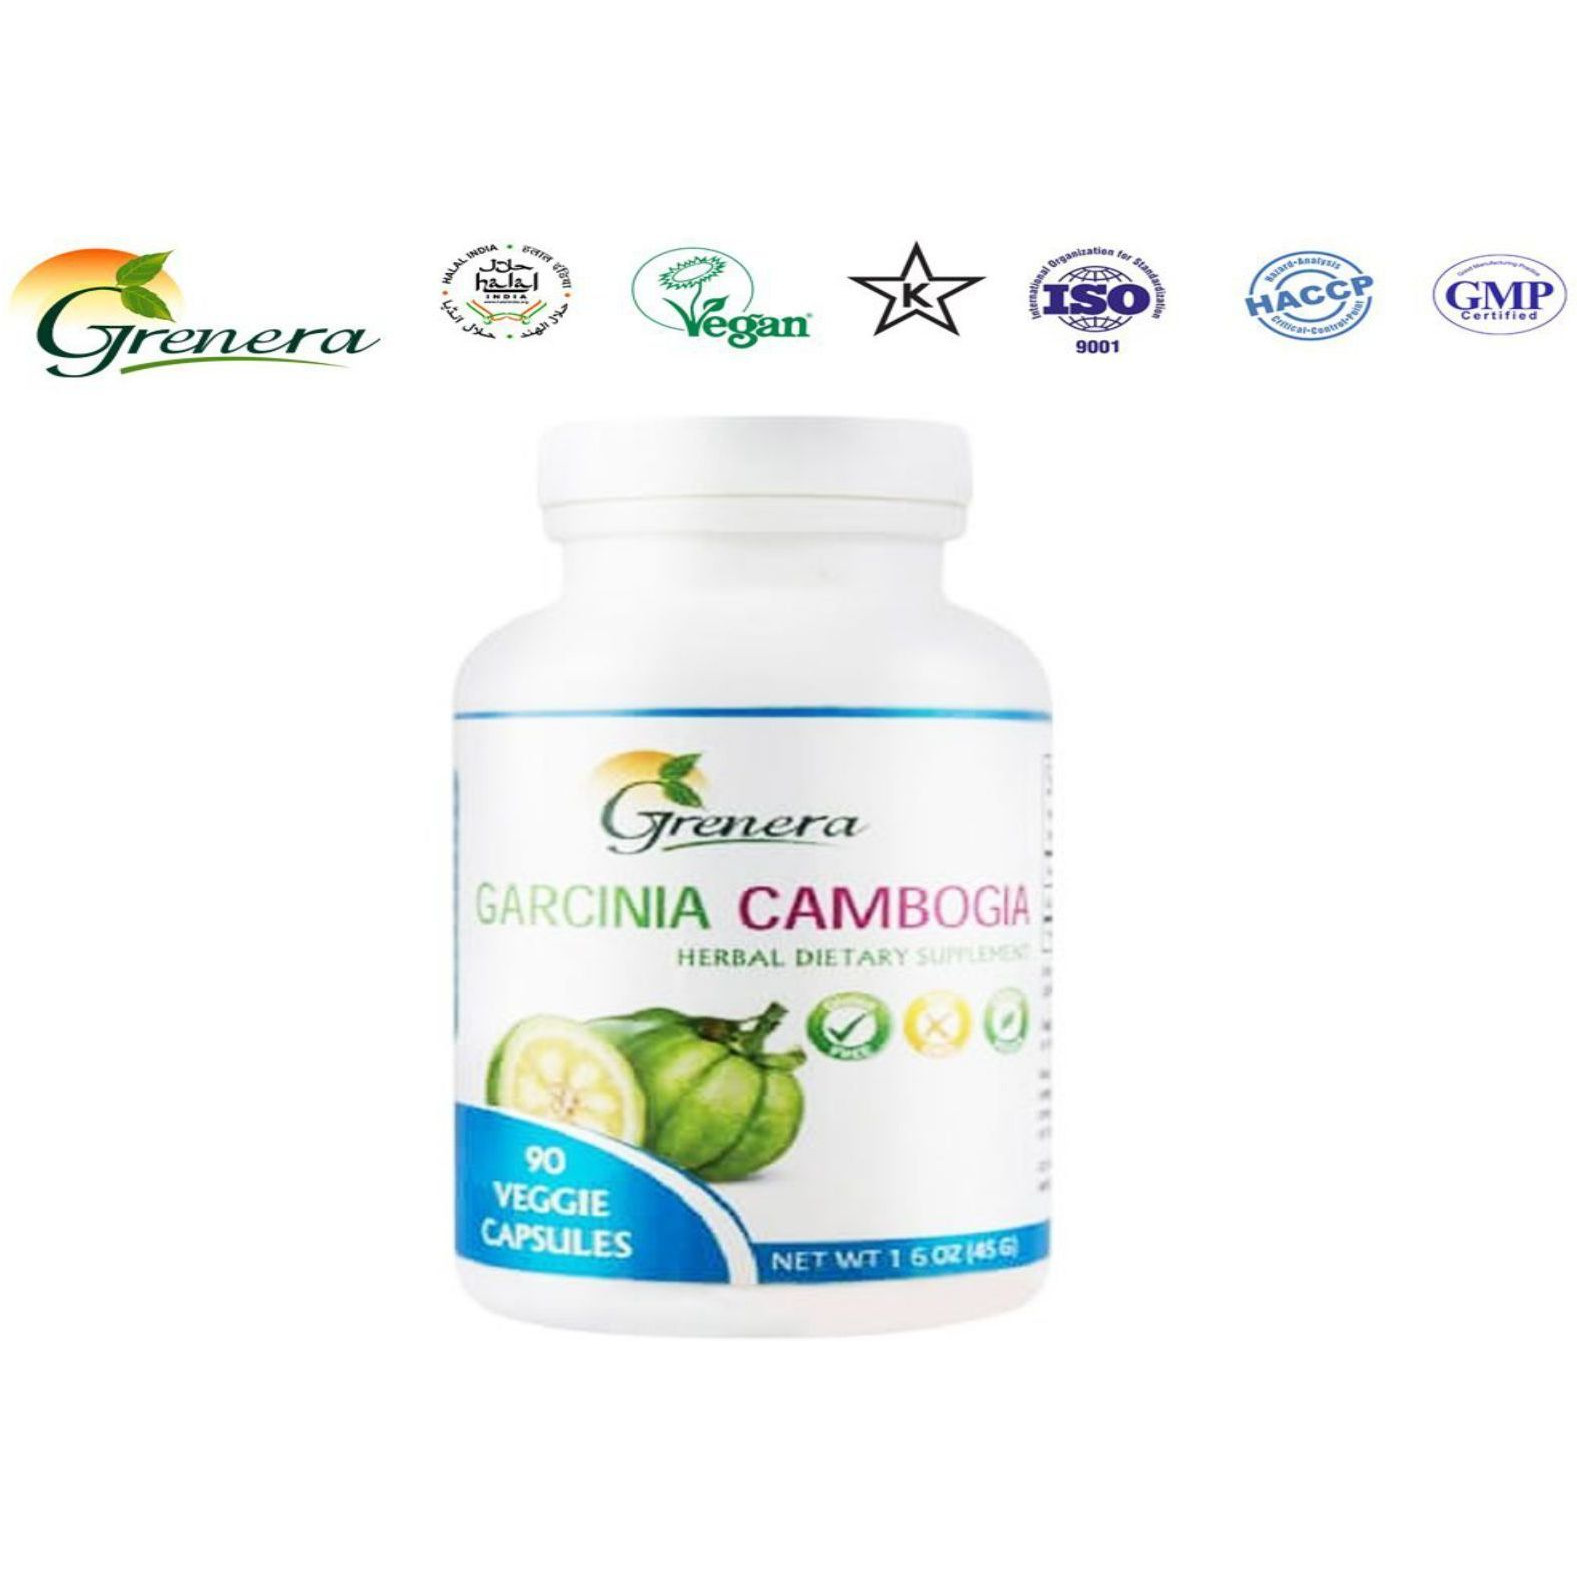 100% Natural Grenera Garcinia Cambogia- Herbals For Health Care- 90 capsule (Size:PACK OF 08)